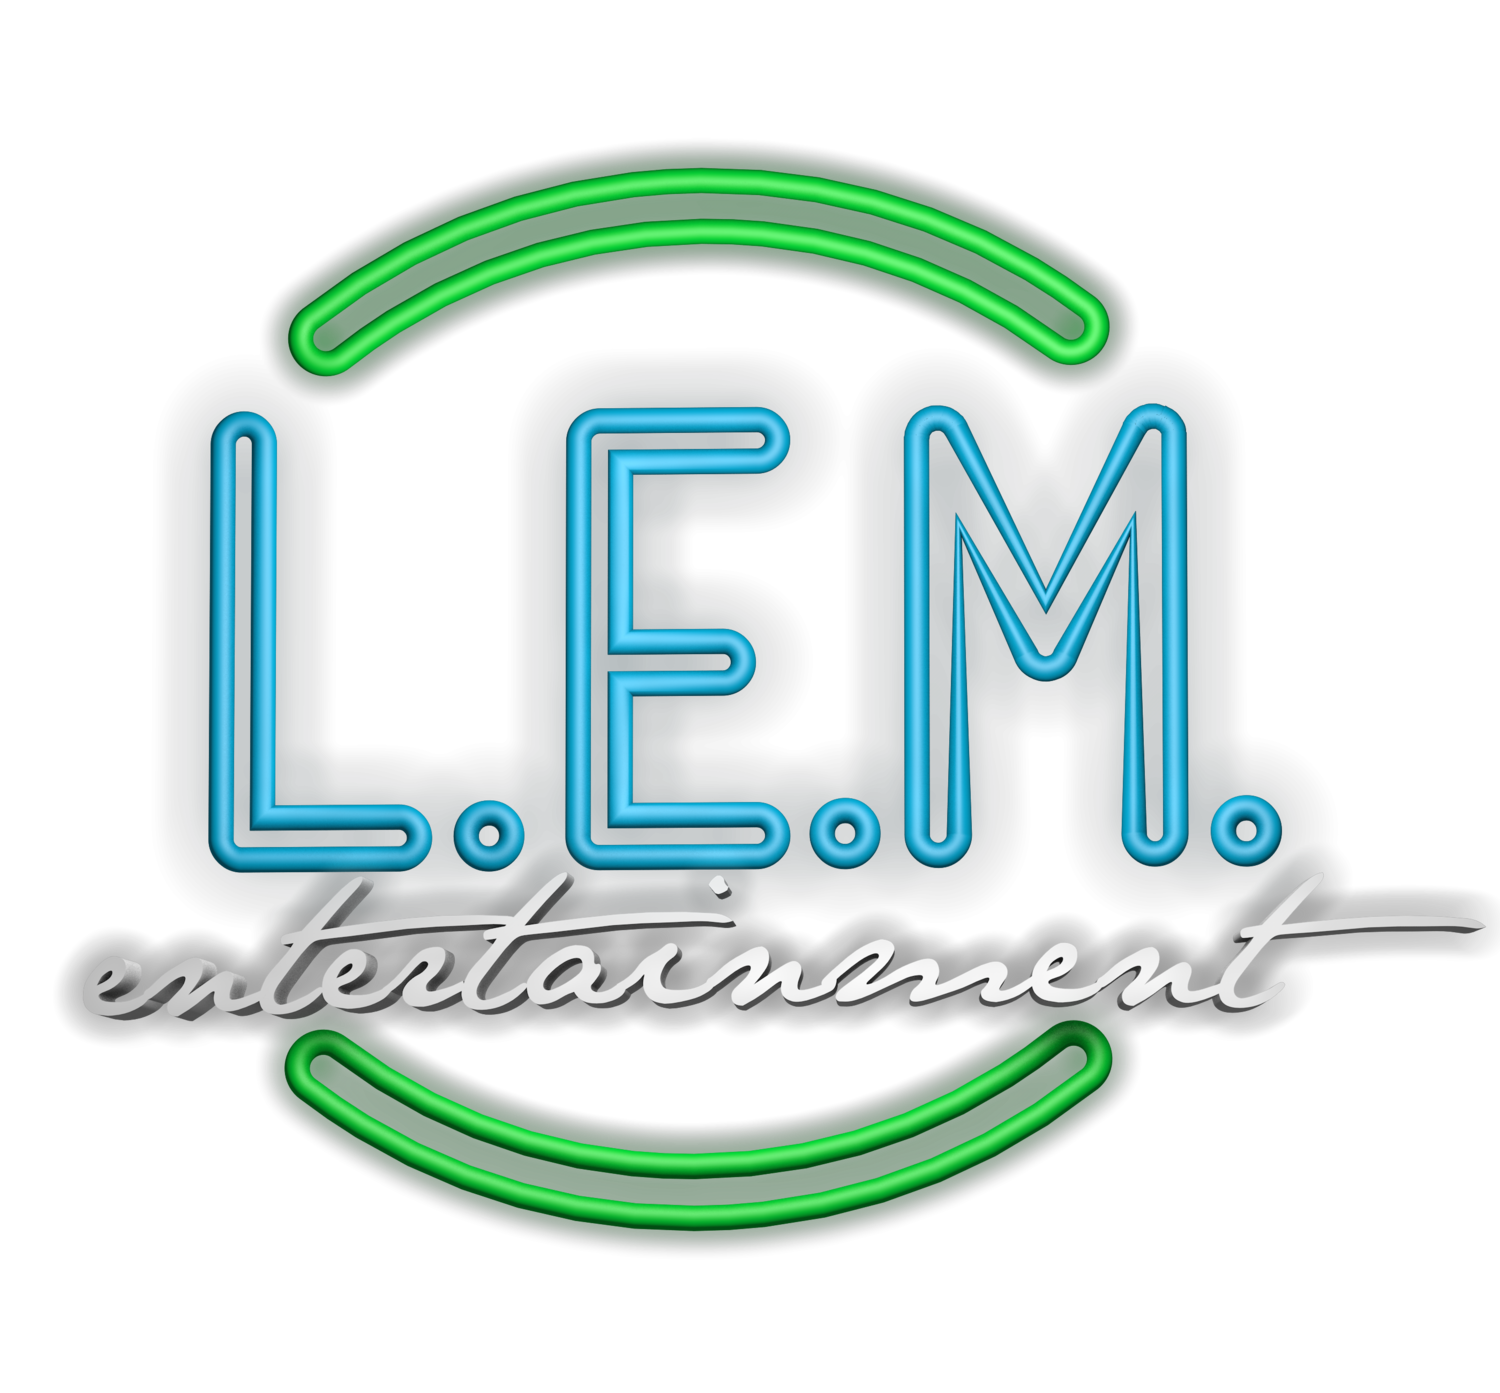 LEM Entertainment